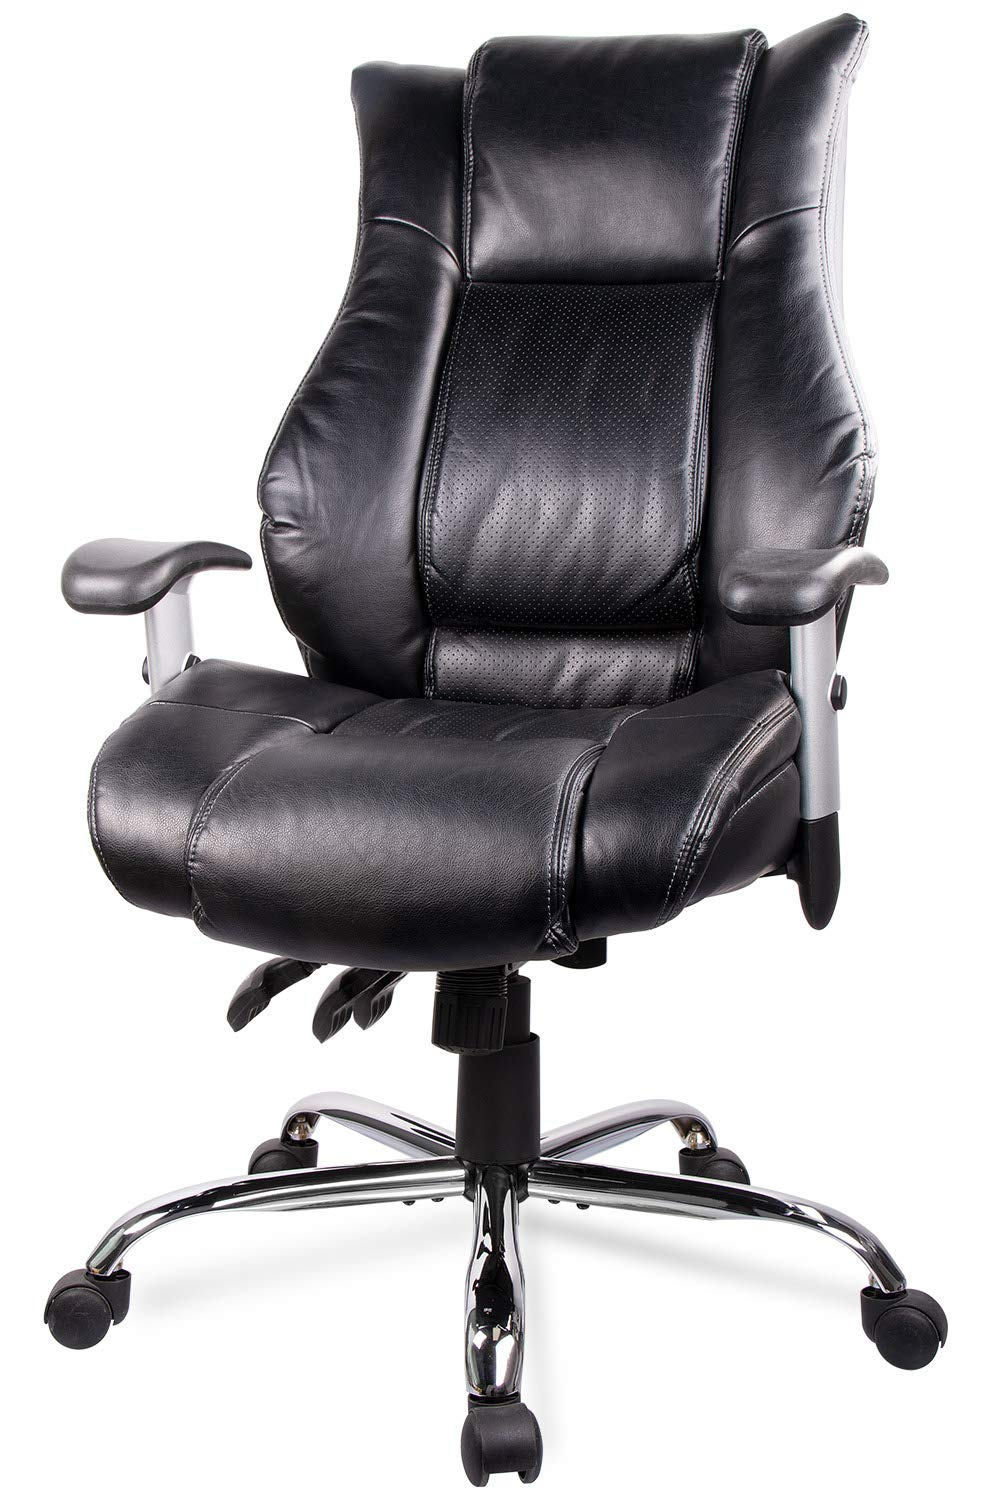 Smugdesk Executive Office Ergonomic Heavy Duty Computer Bonded Leather Adjustable Desk Chair, Swivel Comfortable Rolling, Black by SMUGDESK